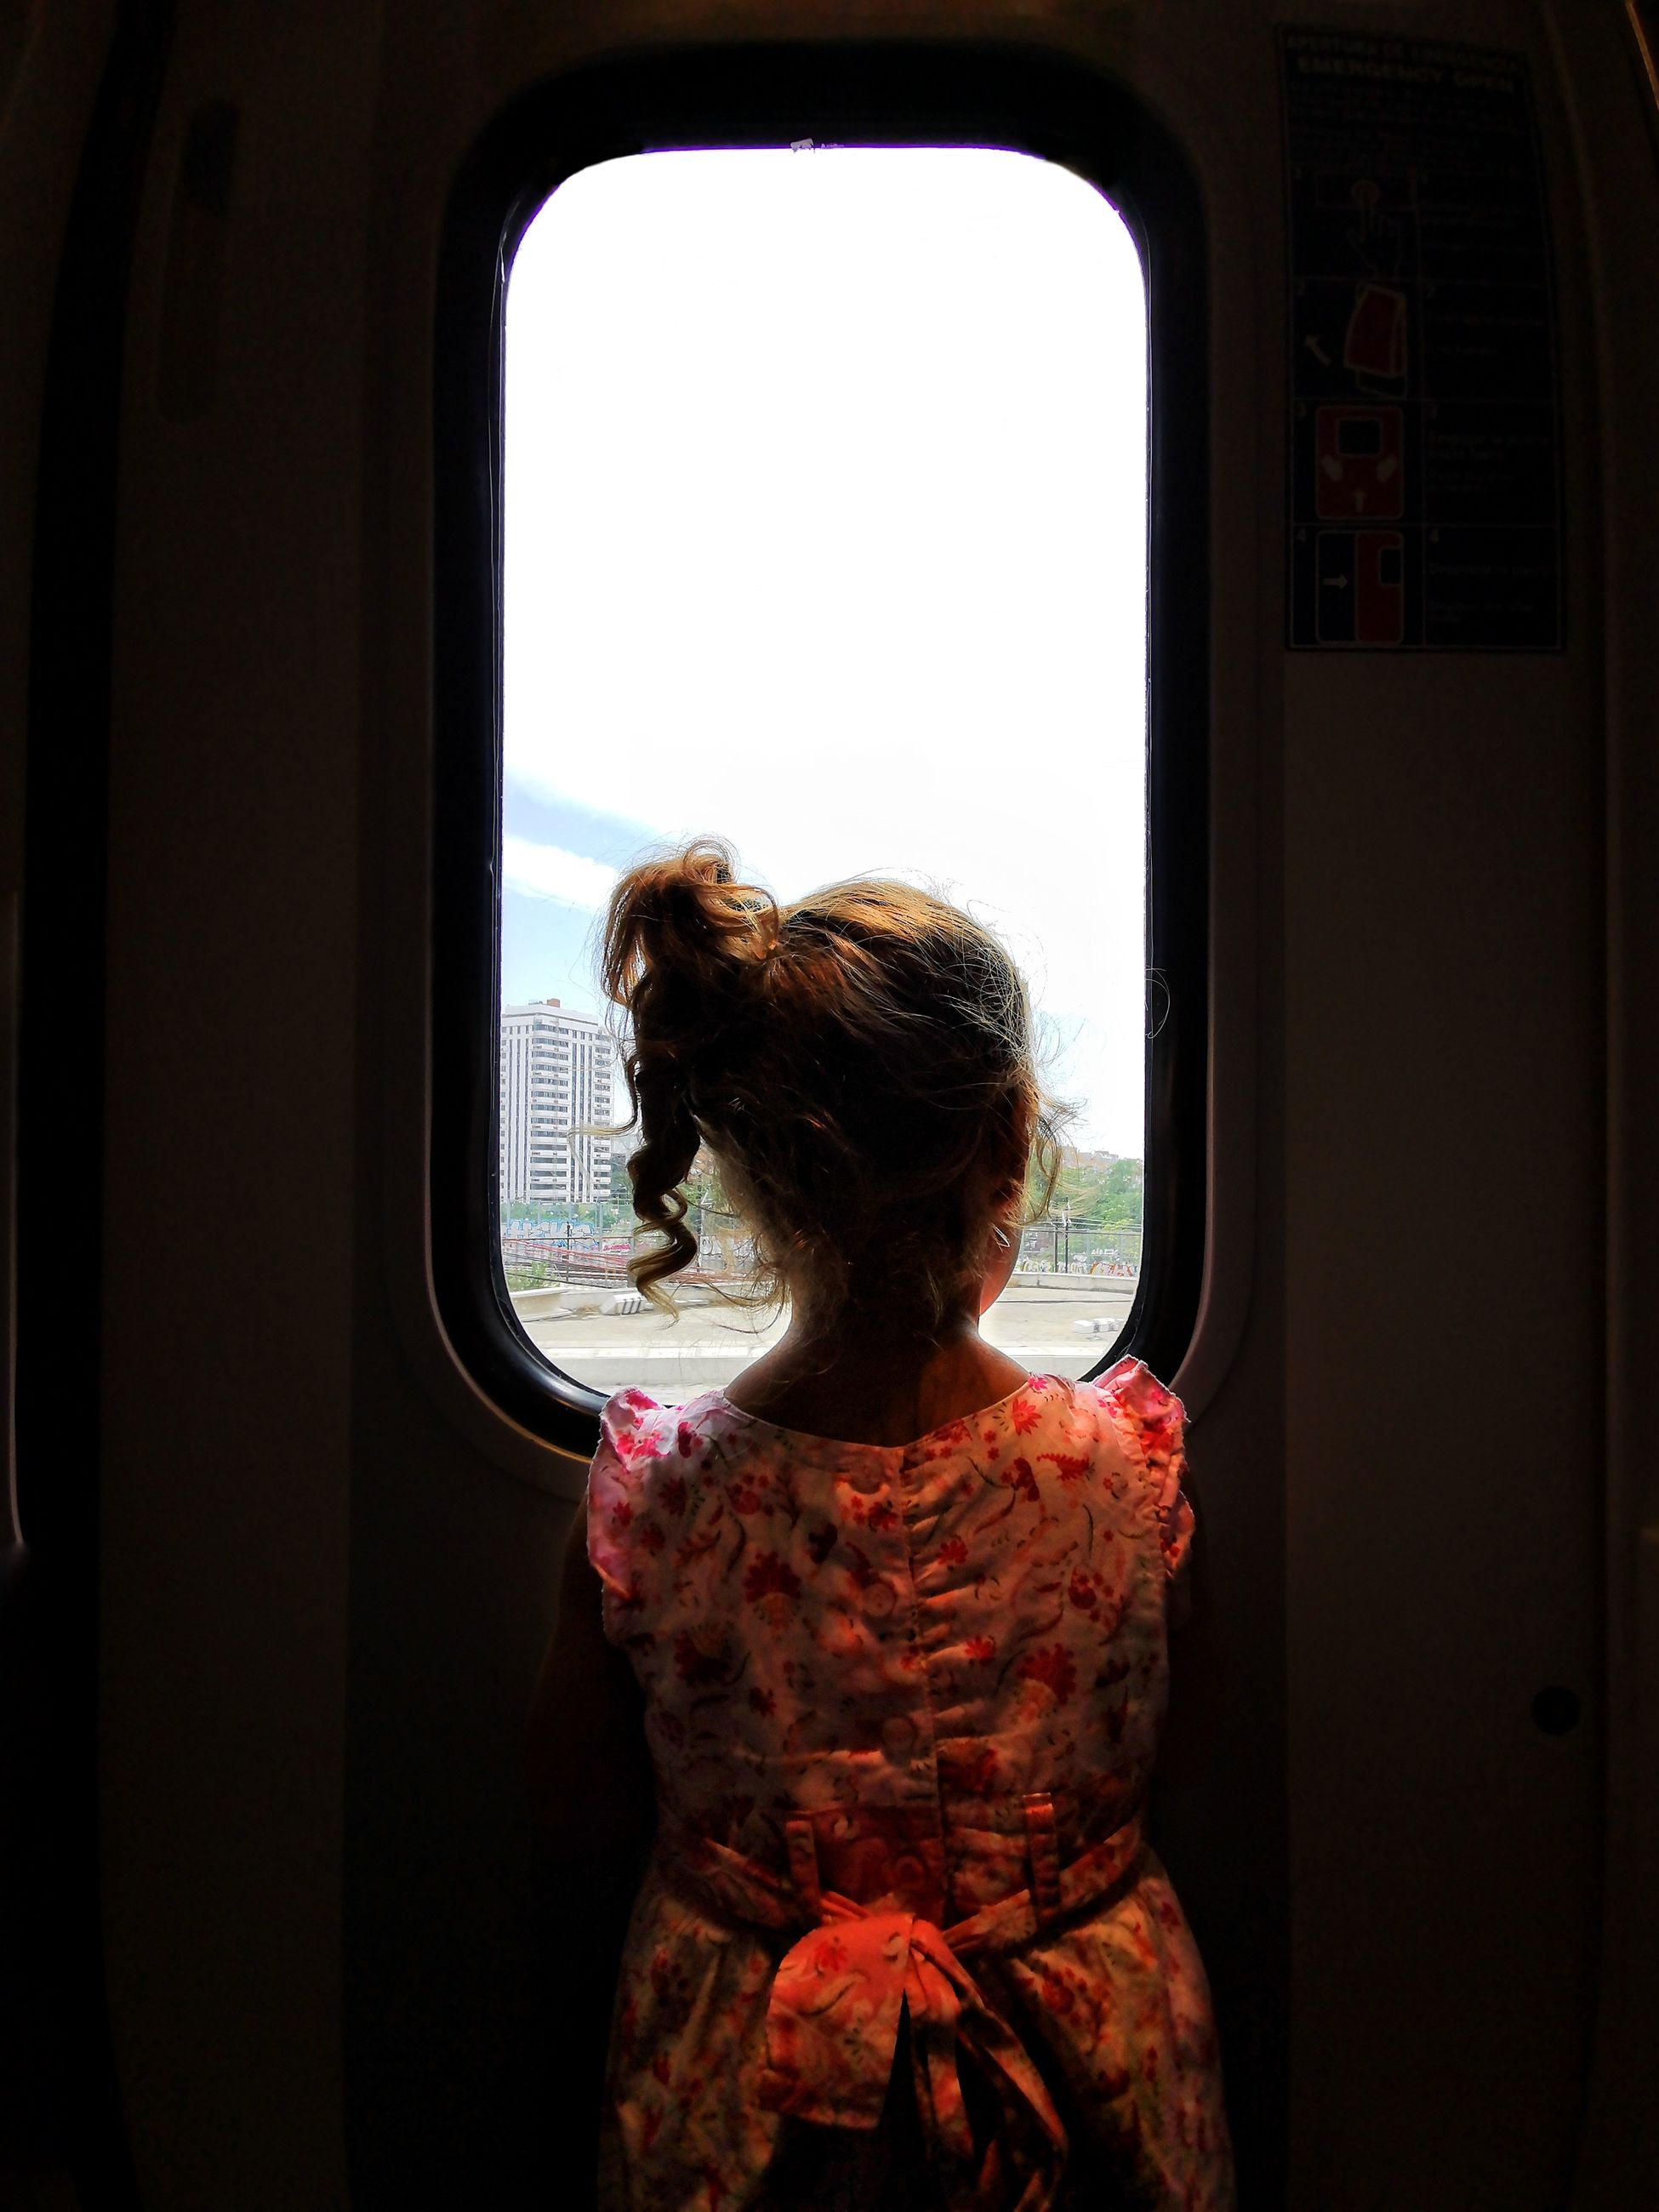 vehicle interior, one person, window, mode of transportation, transportation, real people, lifestyles, transparent, travel, women, rear view, public transportation, looking through window, train, journey, adult, glass - material, rail transportation, day, outdoors, hairstyle